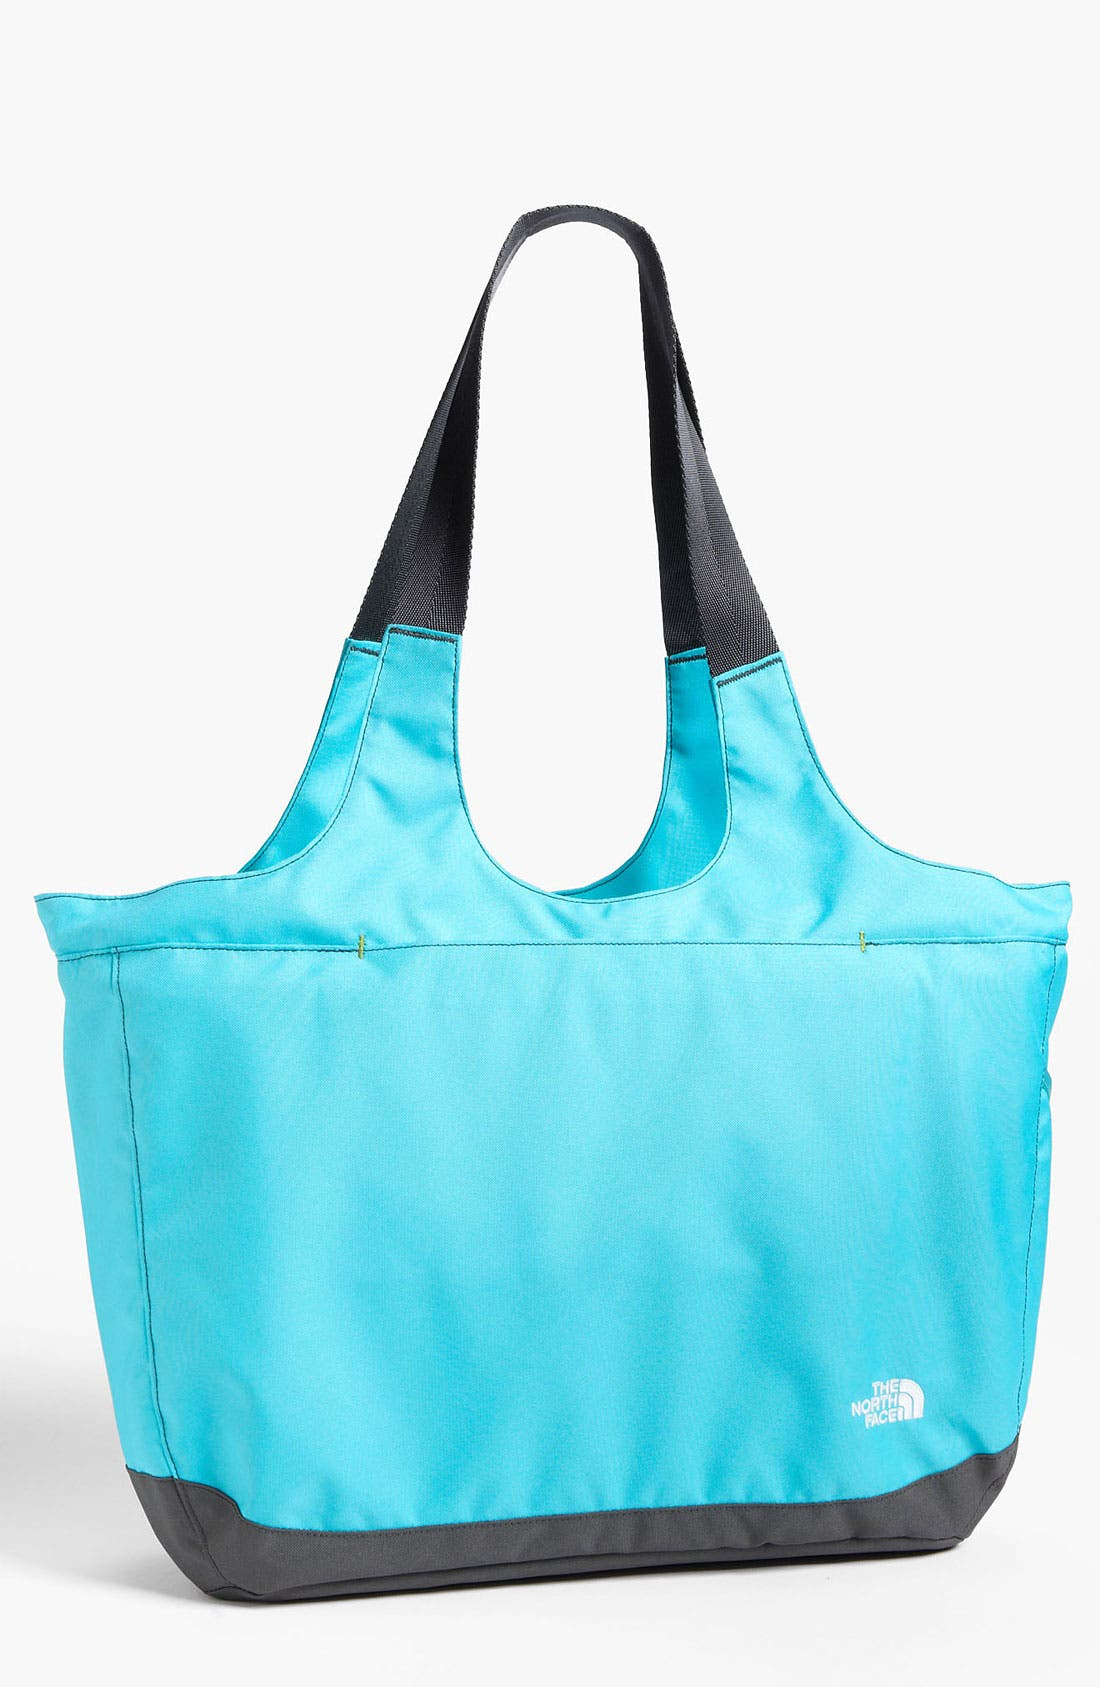 Alternate Image 1 Selected - The North Face 'Talia' Tote Bag